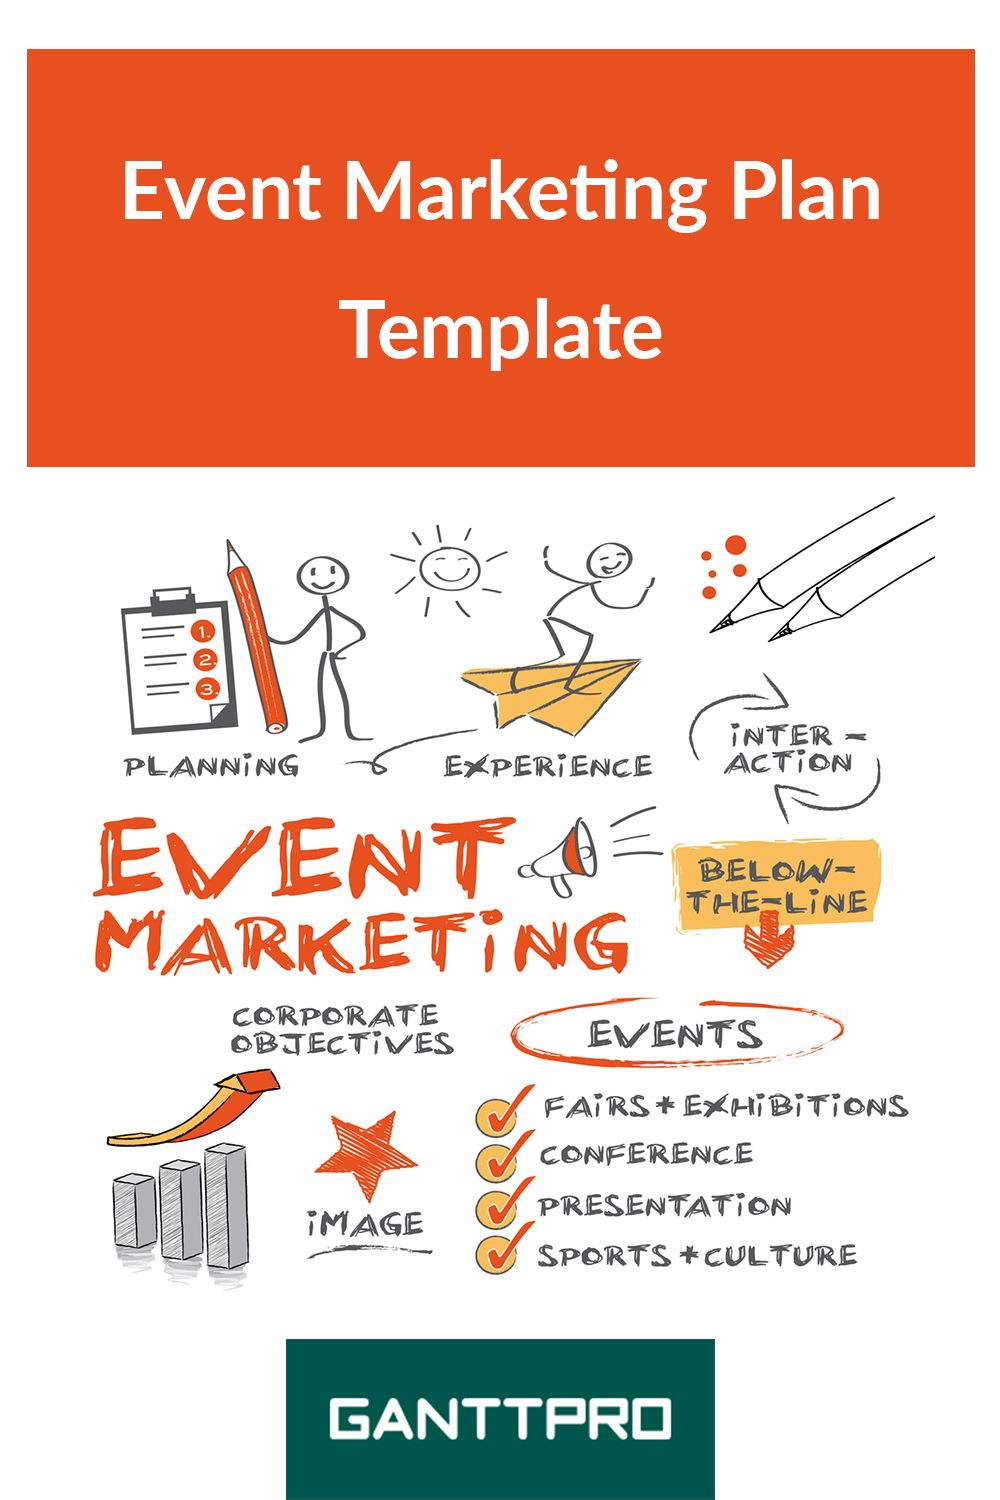 Manage Your Marketing Projects With Free Event Marketing Plan Template In Excel Google Sheets Or Marketing Plan Template Event Marketing Plan Event Marketing